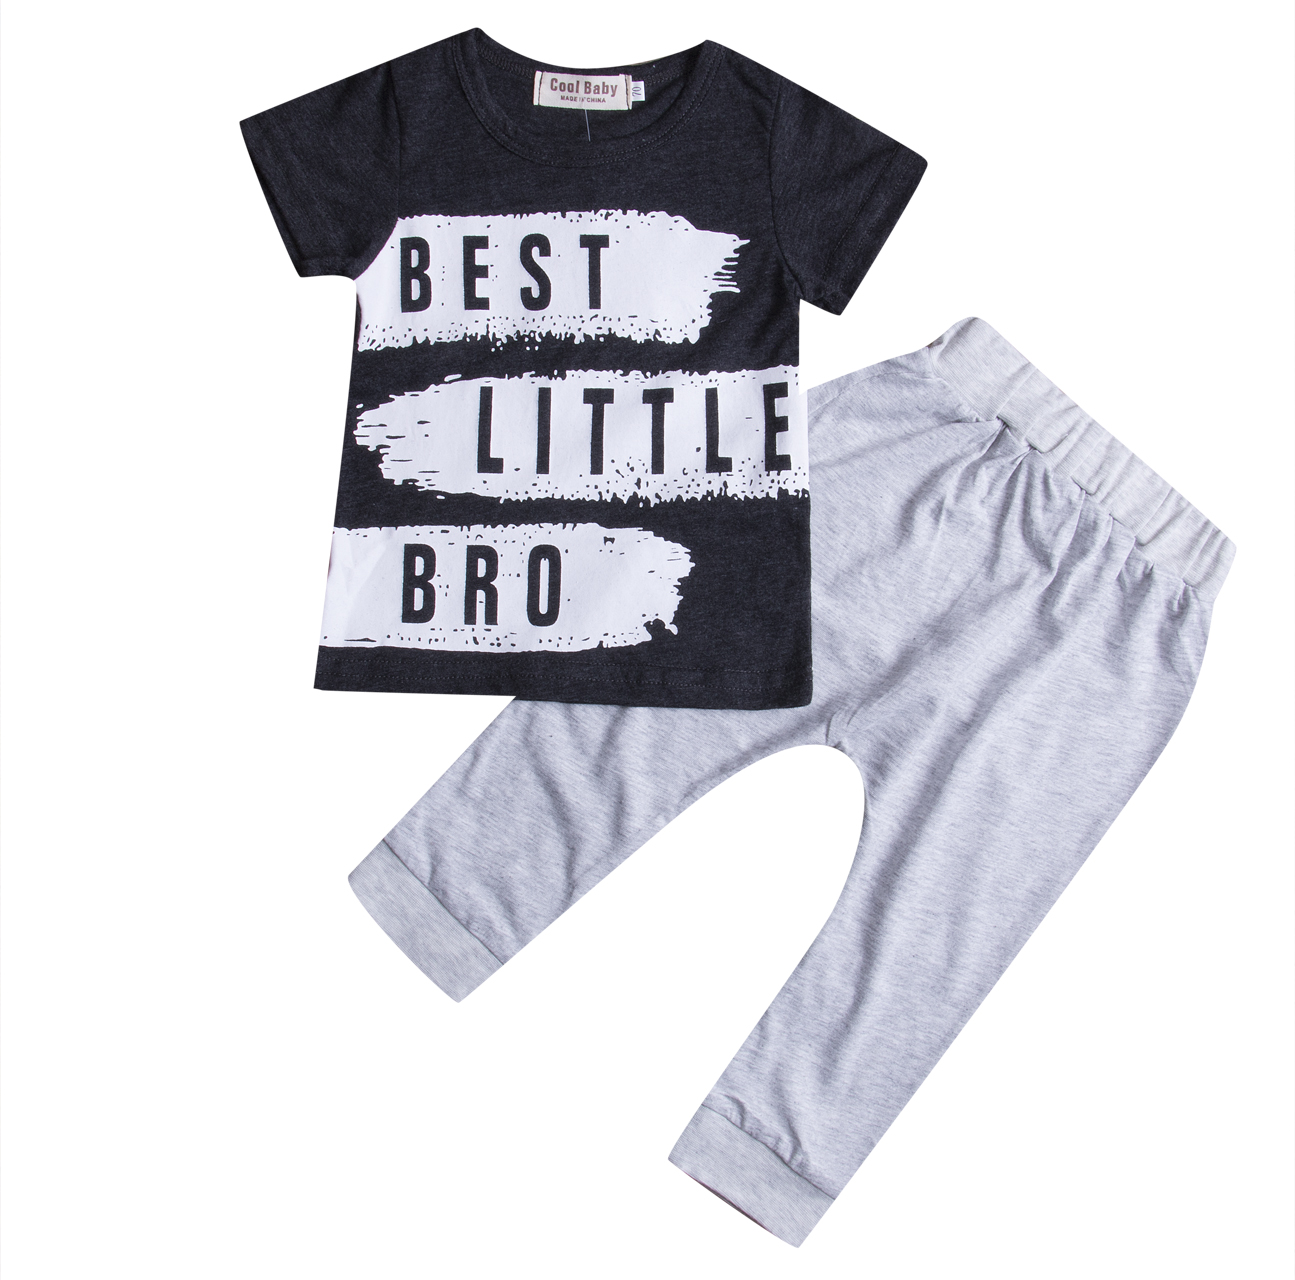 Newborn Infant Kids Baby Boys Clothes Sets T shirt Tee Top Short Sleeve Pants Cotton Letter Outfits Clothing Set 0-24M children s suit baby boy clothes set cotton long sleeve sets for newborn baby boys outfits baby girl clothing kids suits pajamas